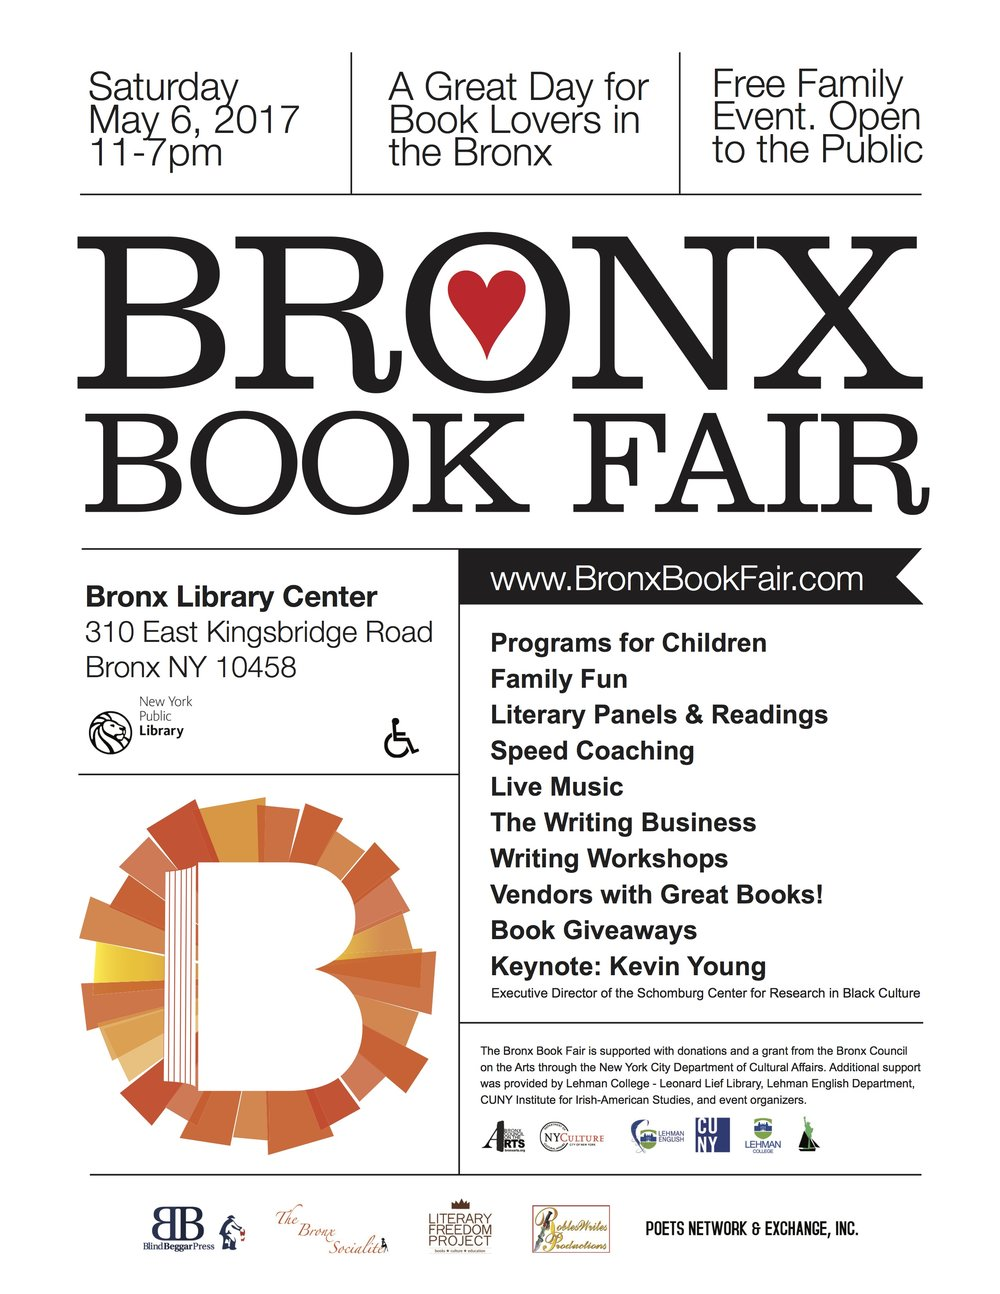 Bronx Book Fair - May 6, 2017 - 10am || Bronx Library CenterZine Publishing and Beyond -Learn different ways of self-publishing, and walk away with ideas on how to create, print, and distribute your own publication. Faciliators: Margot Terc, Ana Maria Hoffman, and Tammy Lopez.